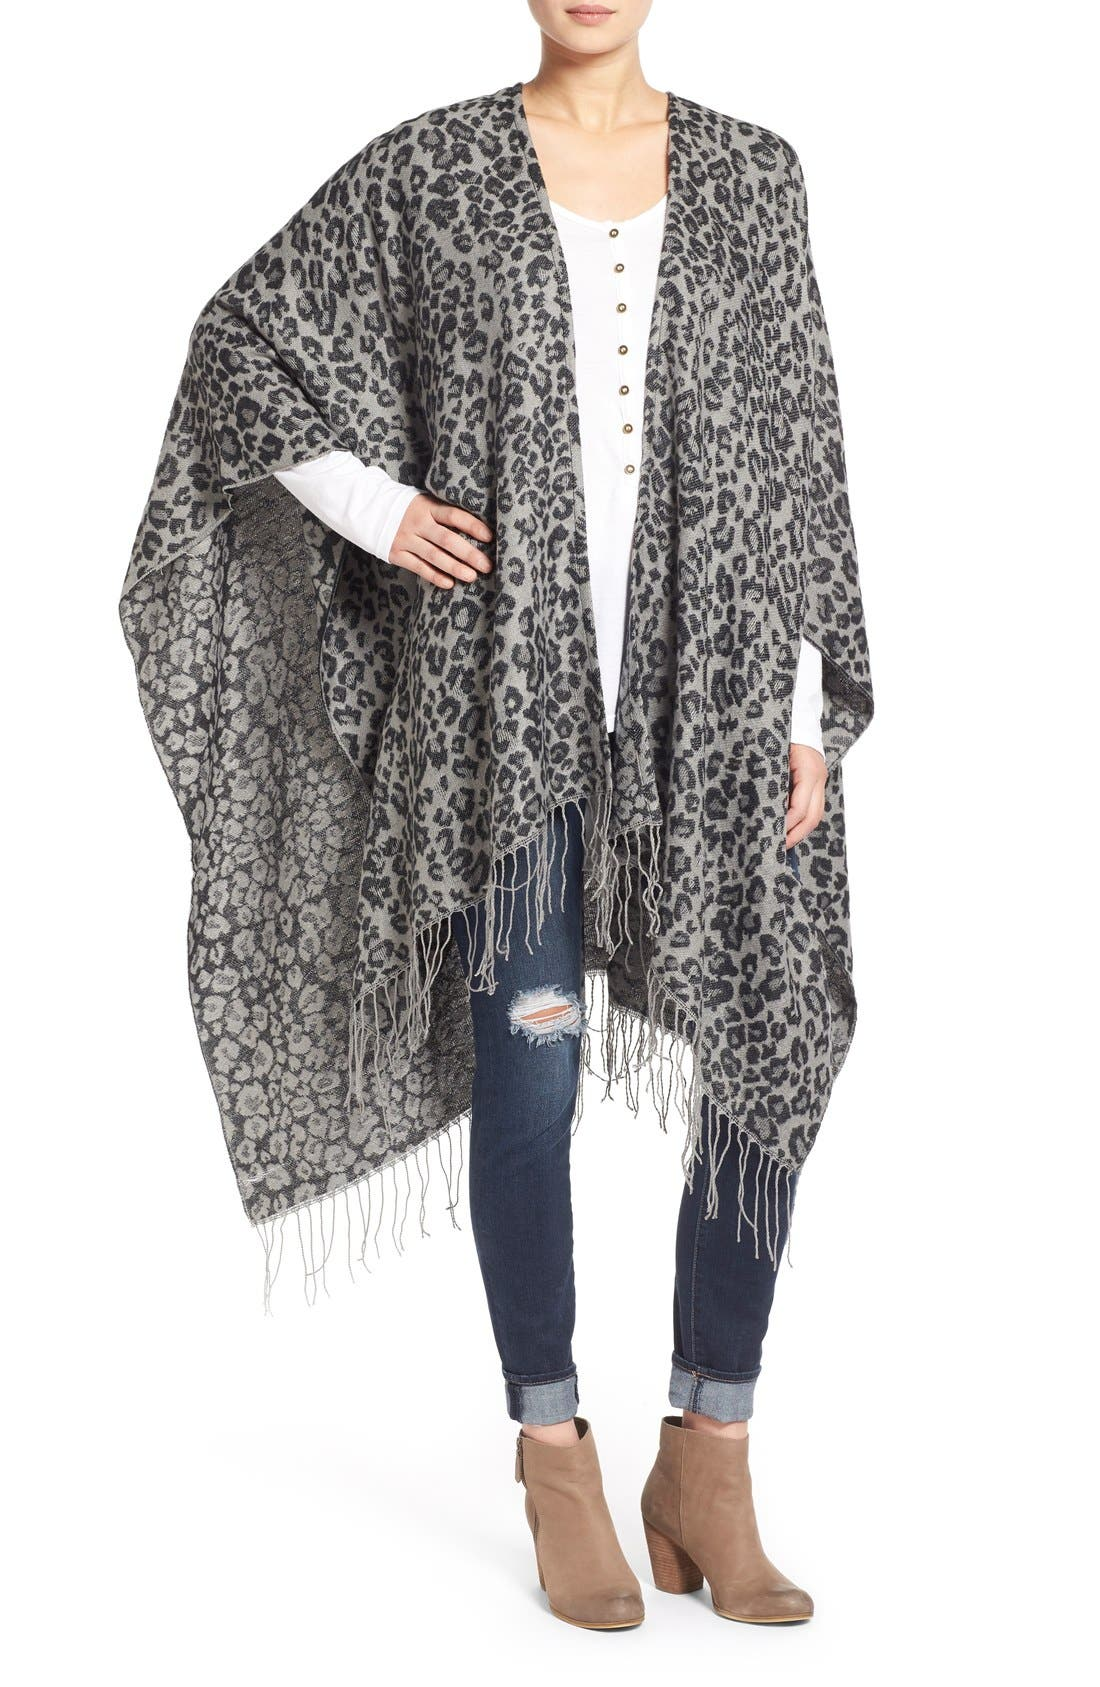 Alternate Image 1 Selected - Capelli of New York Leopard Print Knit Cape